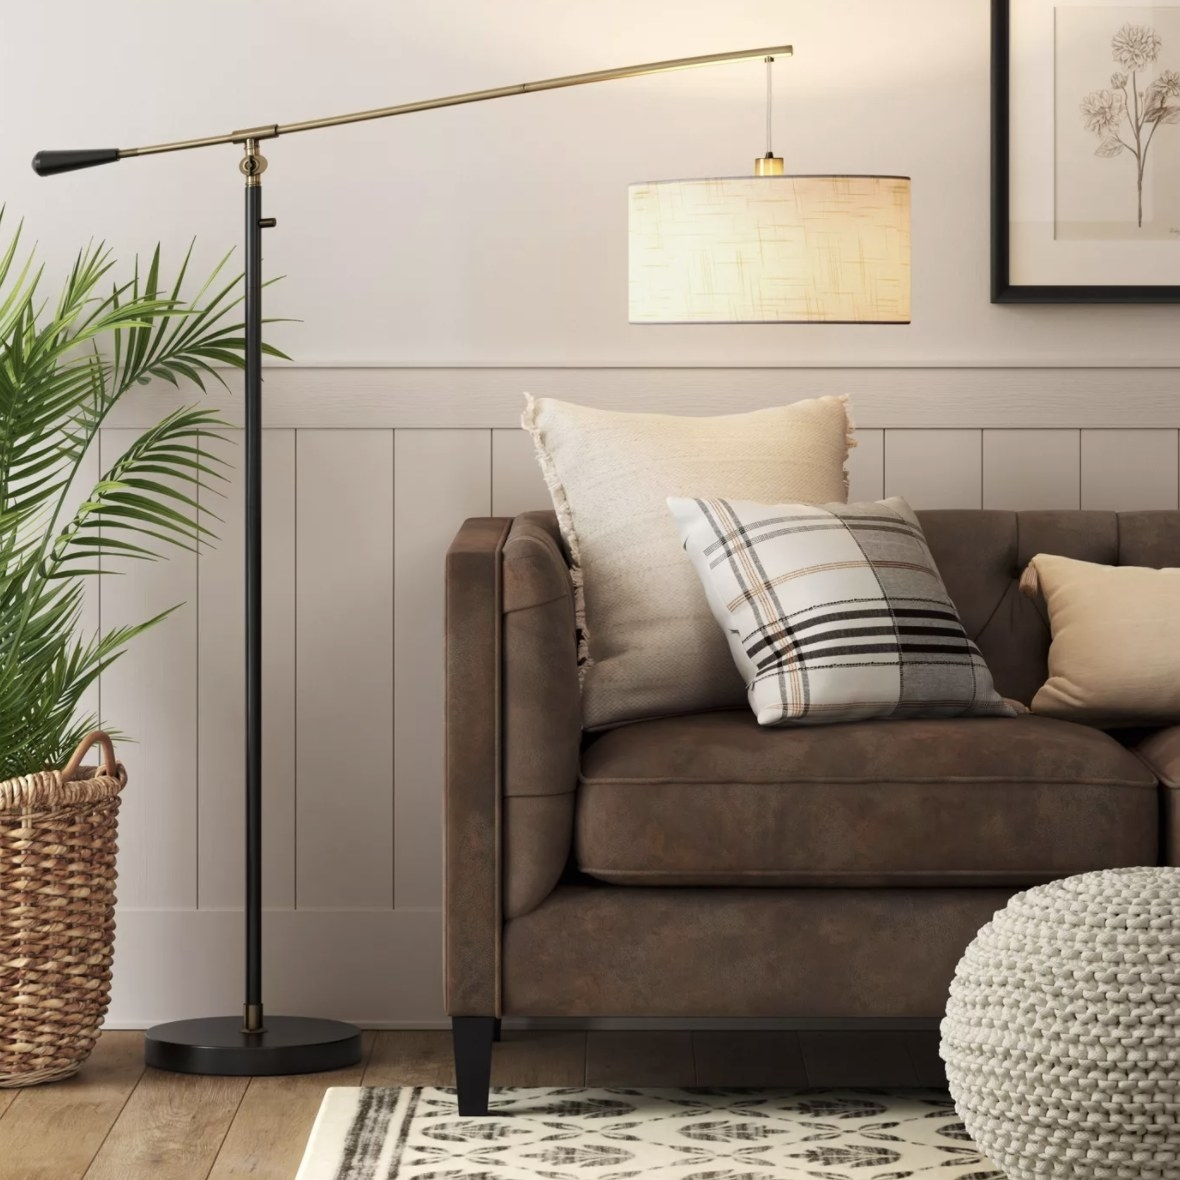 The black, gold-tone and cream lamp is overlooking a couch in a clean living room space